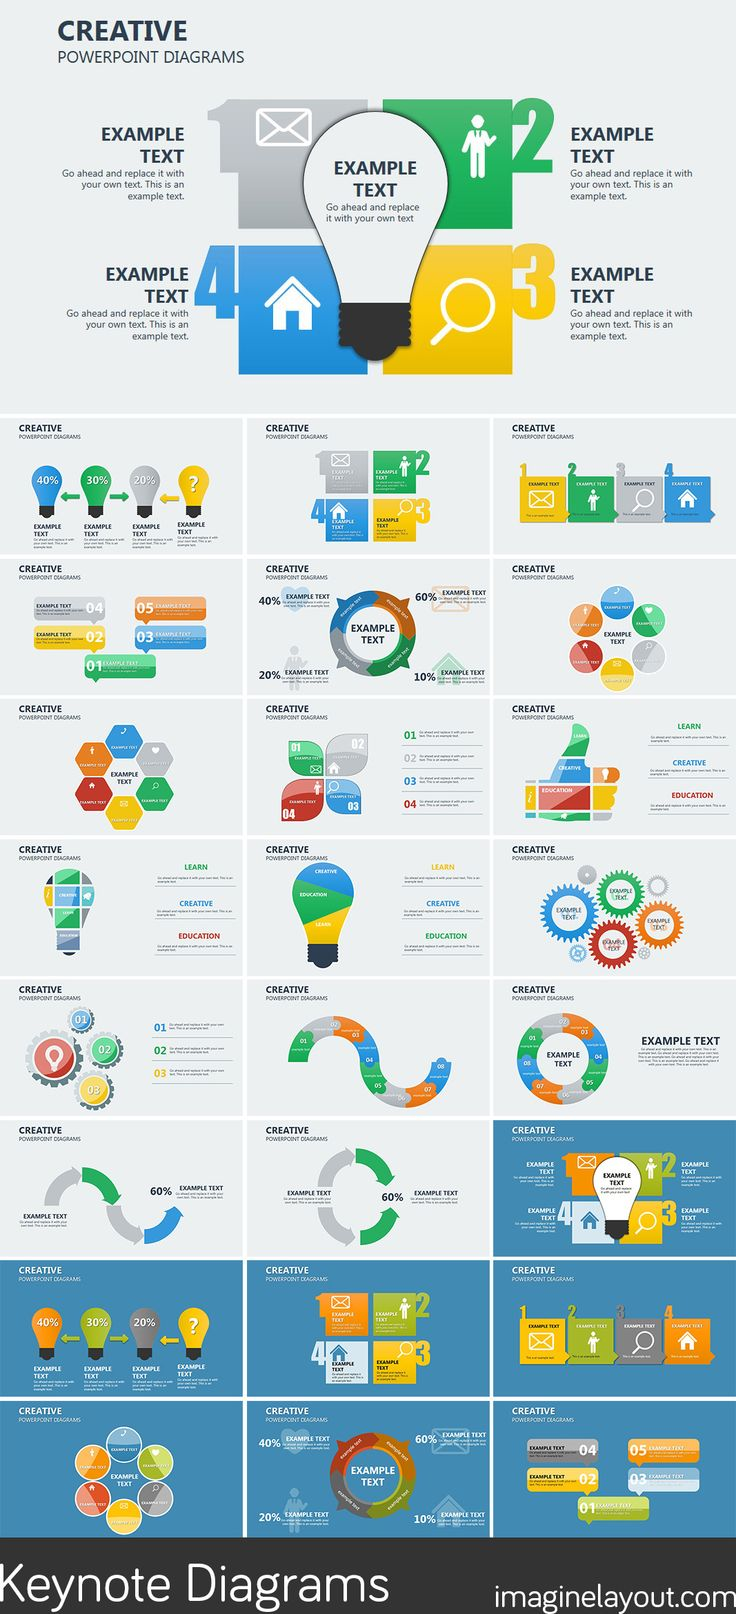 84 best keynote diagrams images on pinterest template keynote download creative keynote diagrams imaginelayout creative powerpointmenutemplatesrole modelstemplate alramifo Gallery